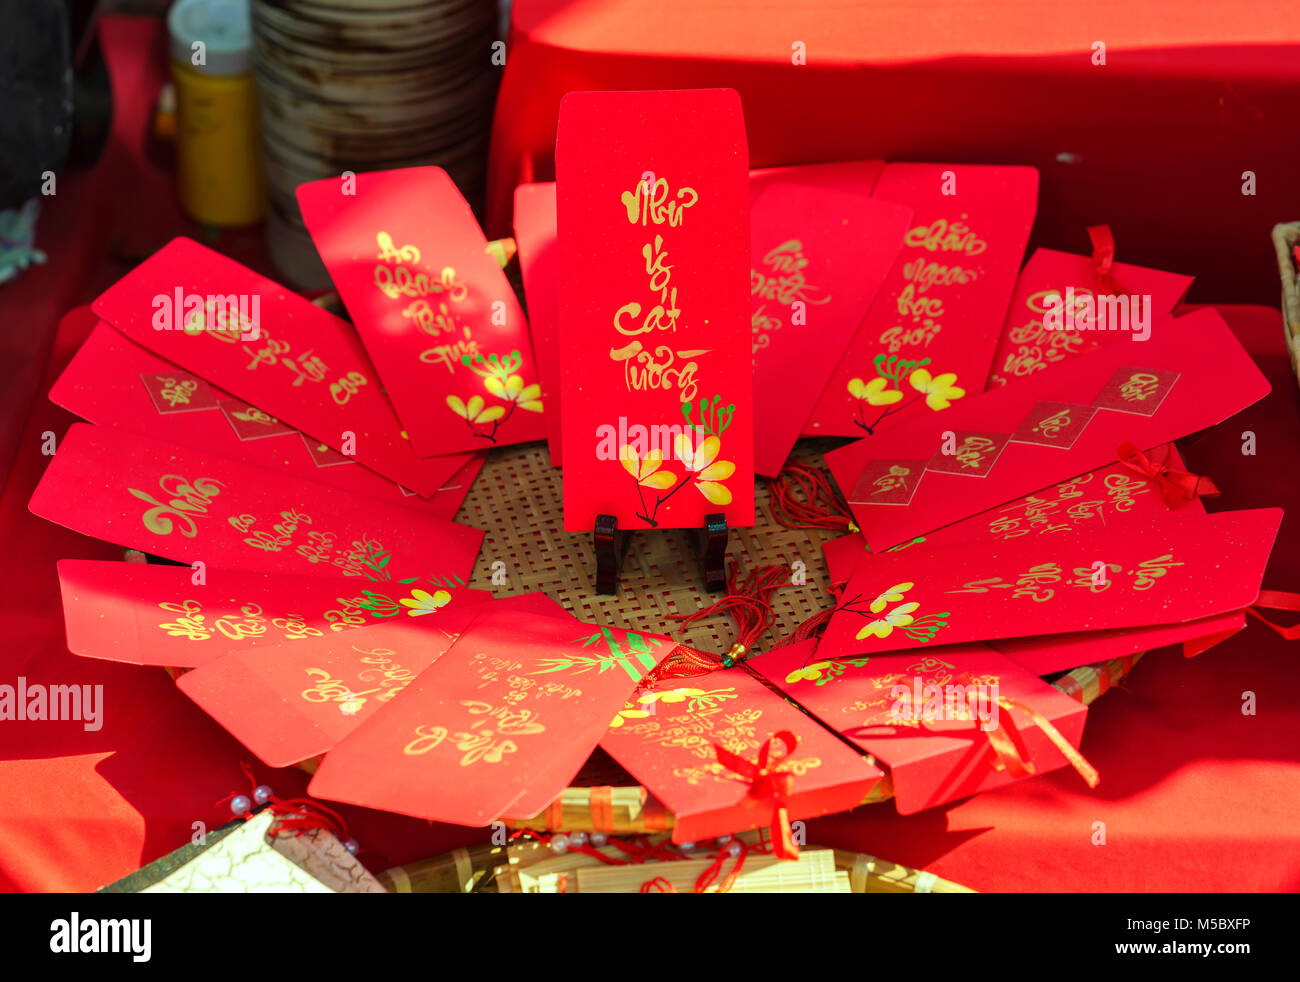 Red envelopes Lunar New Year Calligraphy decorated with text 'Merit, fortune, longevity' in Vietnamese means - Stock Image